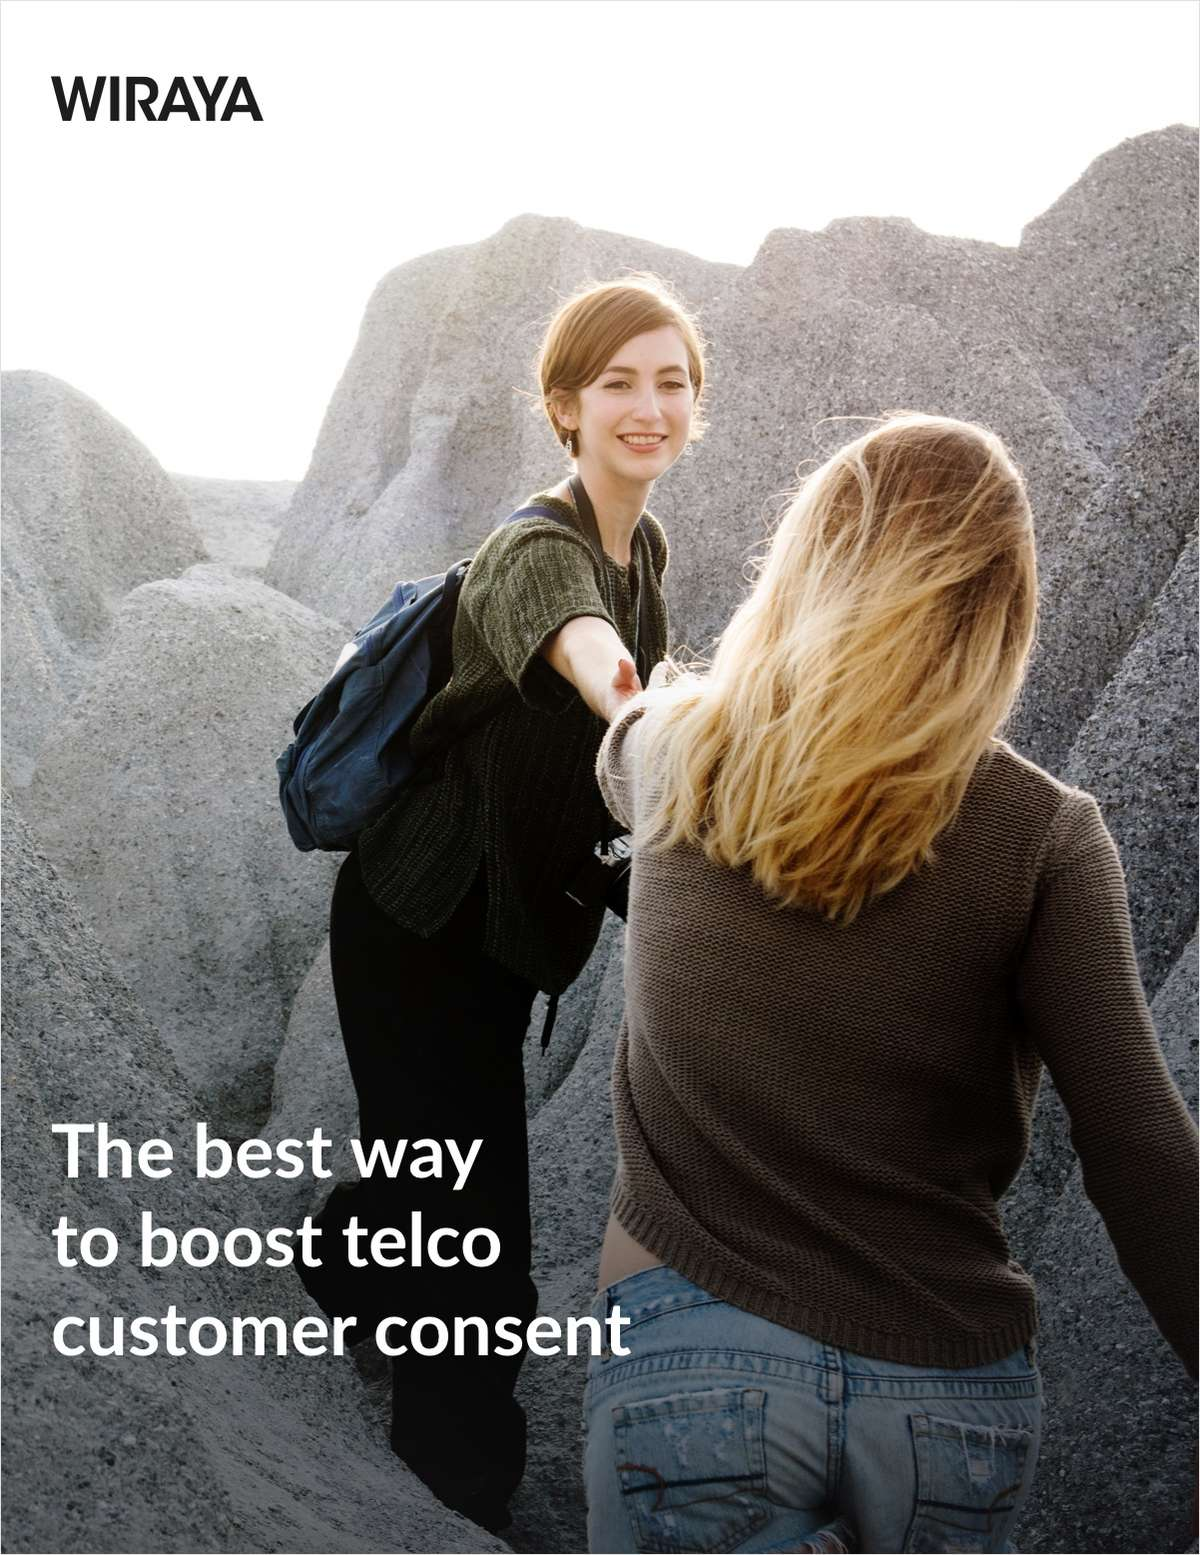 The best way for telcos to boost customer consent